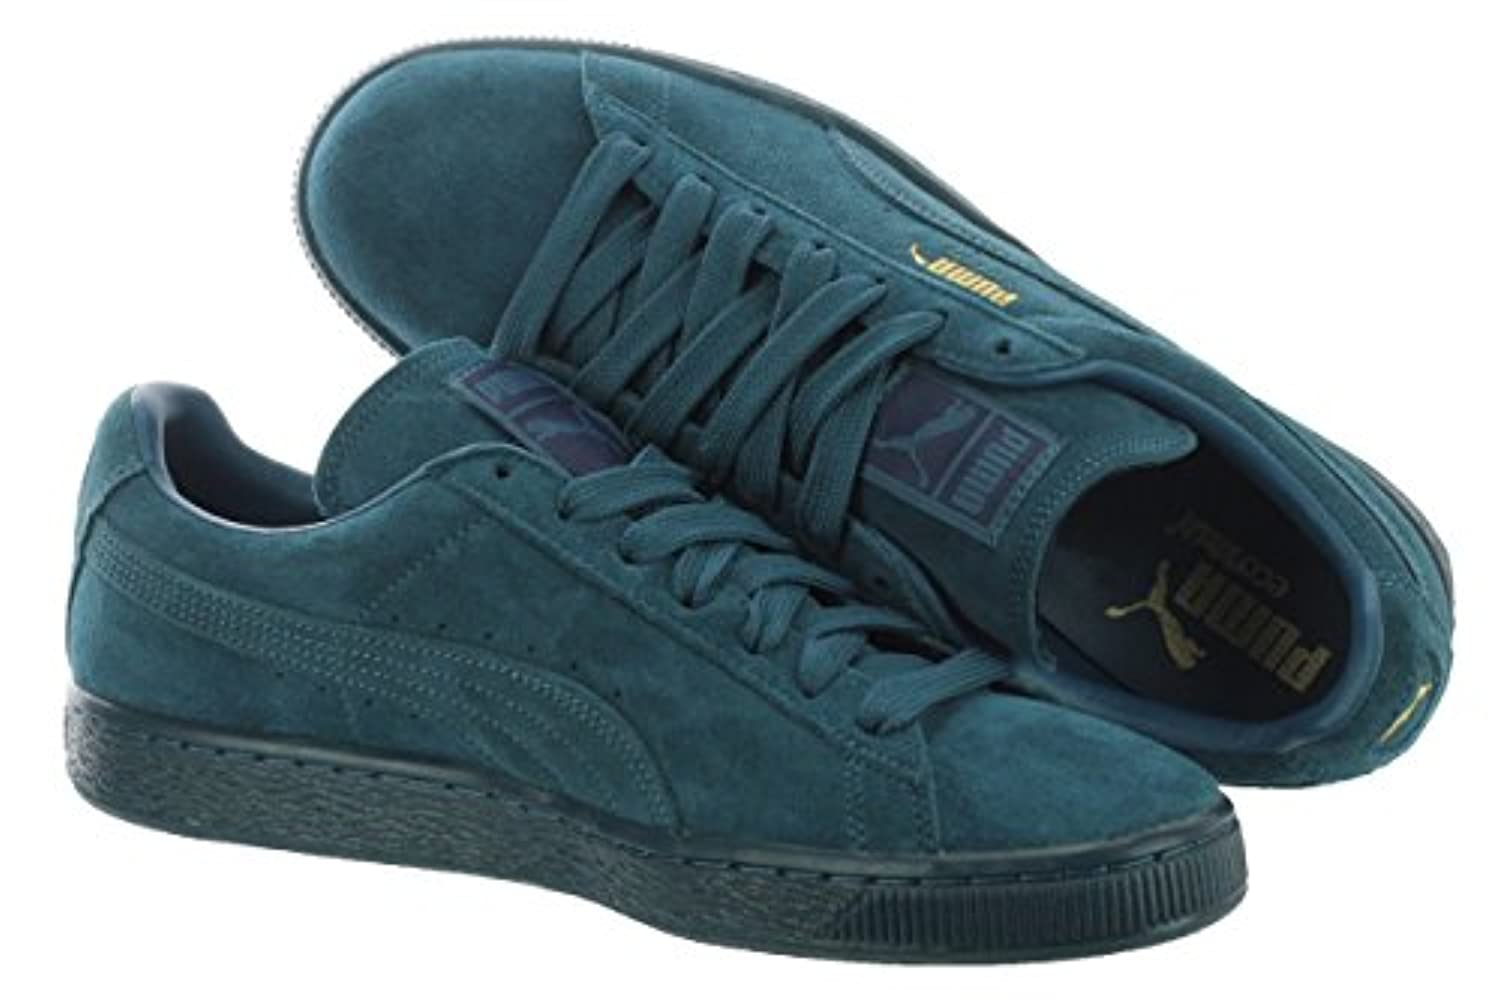 new style f723e 14634 Puma Suede Classic + Mono Iced 36023101 Blue Coral / Team Gold 11 D(M) US  Men | $37.89 - Buy today!